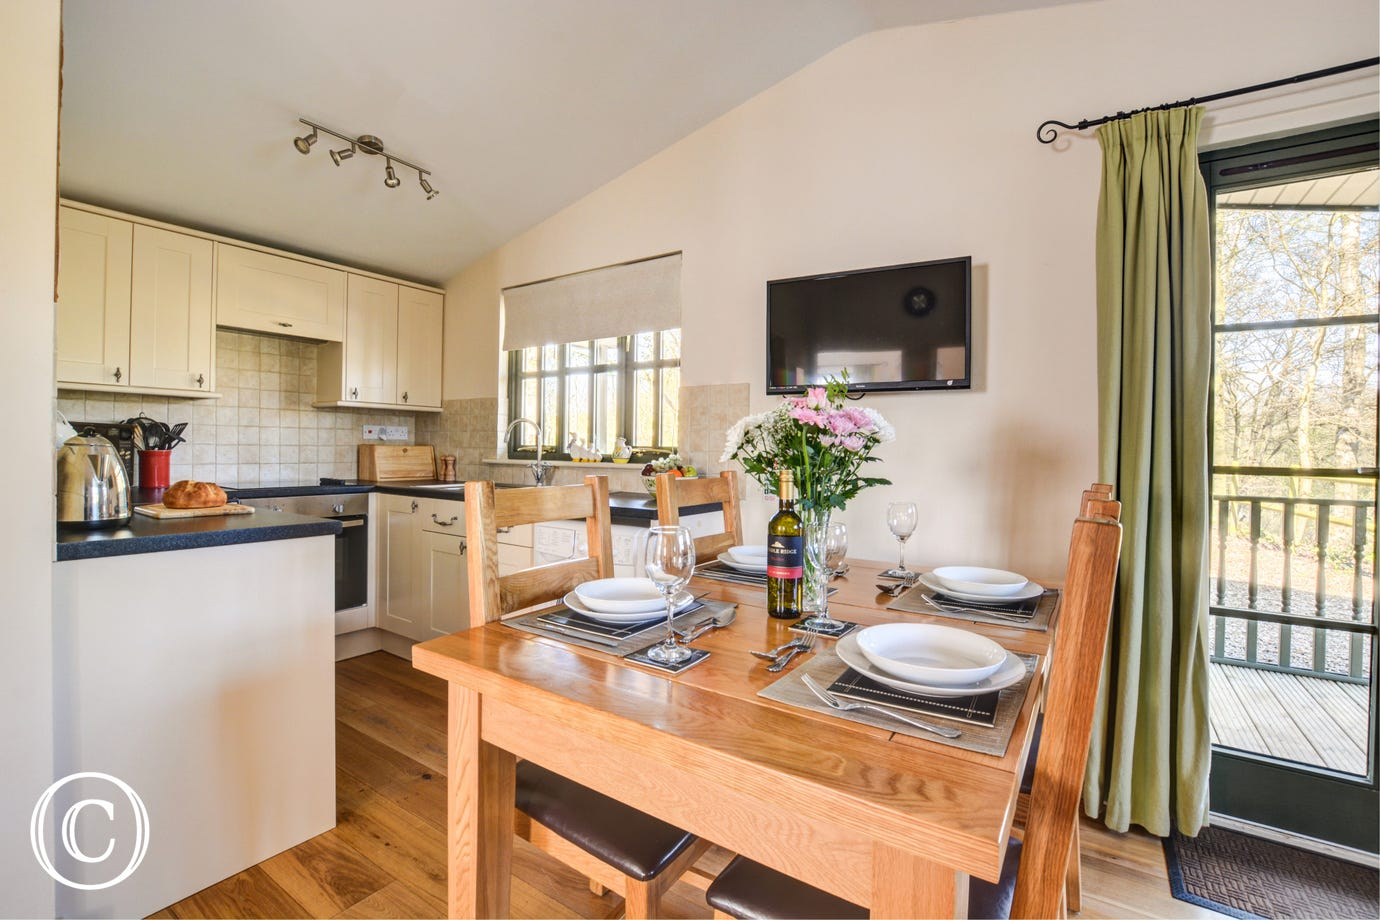 Light and airy dining area with a table and chairs, perfect for family meals